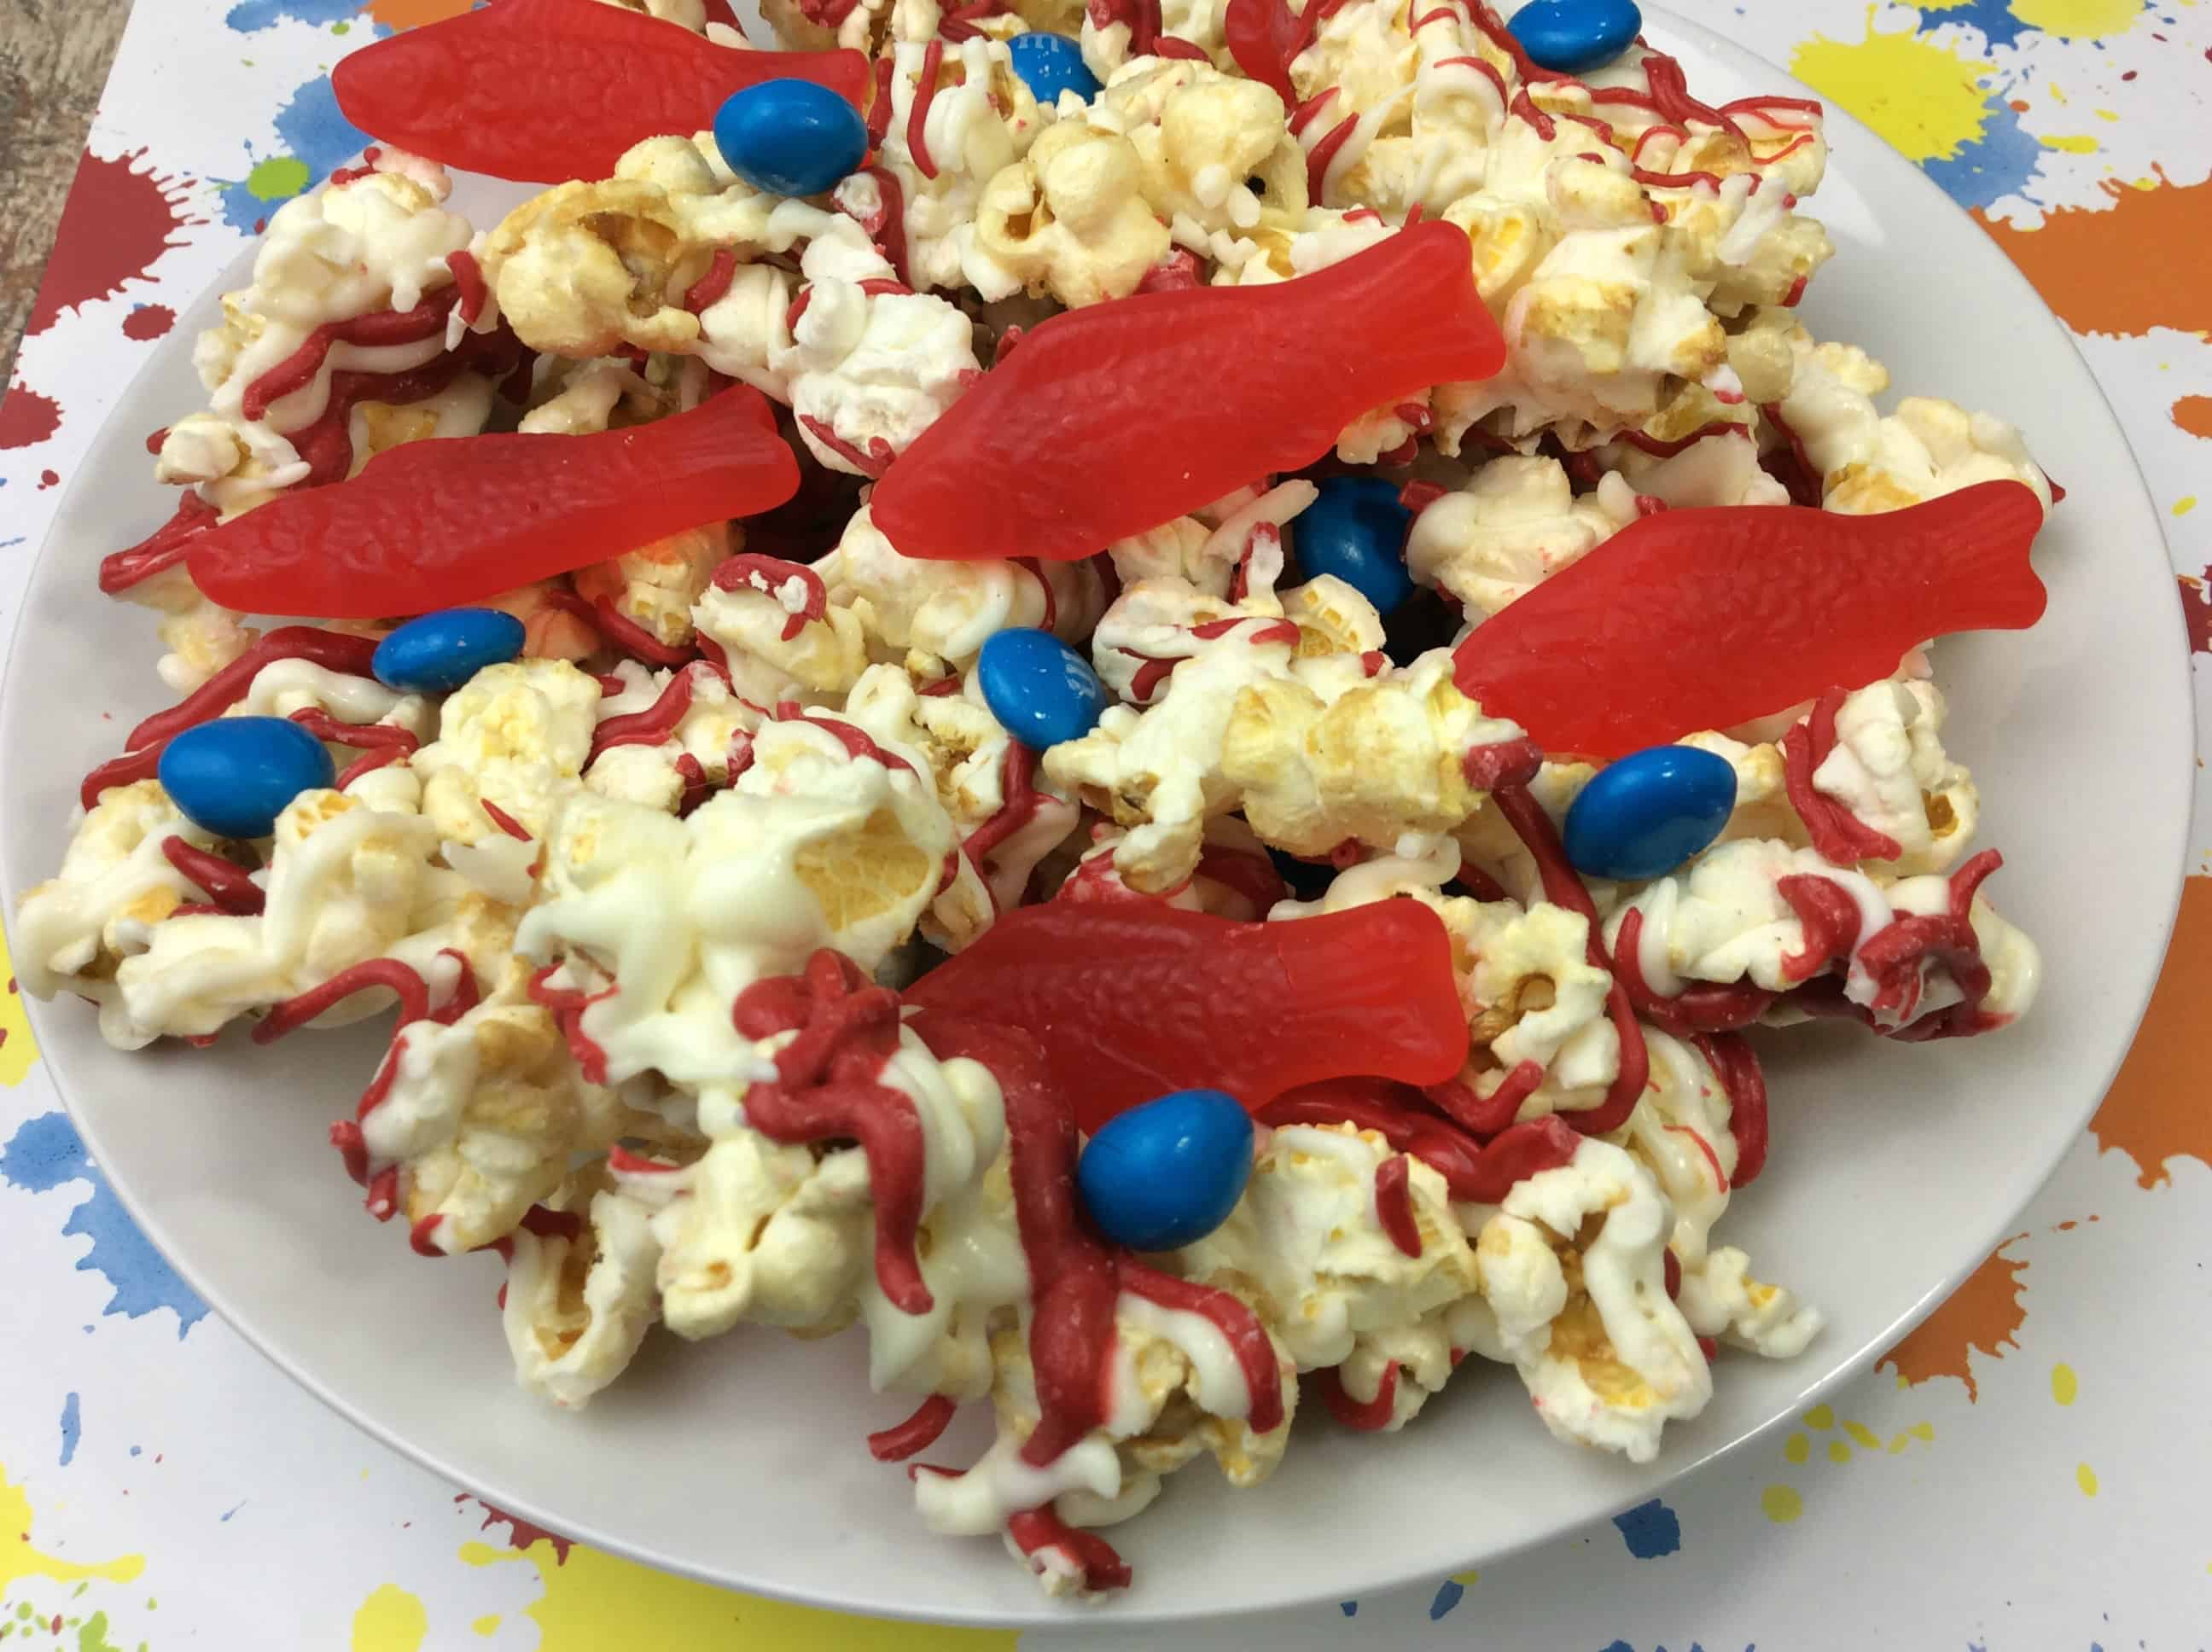 Candy Popcorn Recipe from Dr. Seuss One Fish, Two Fish, Red Fish, Blue Fish.